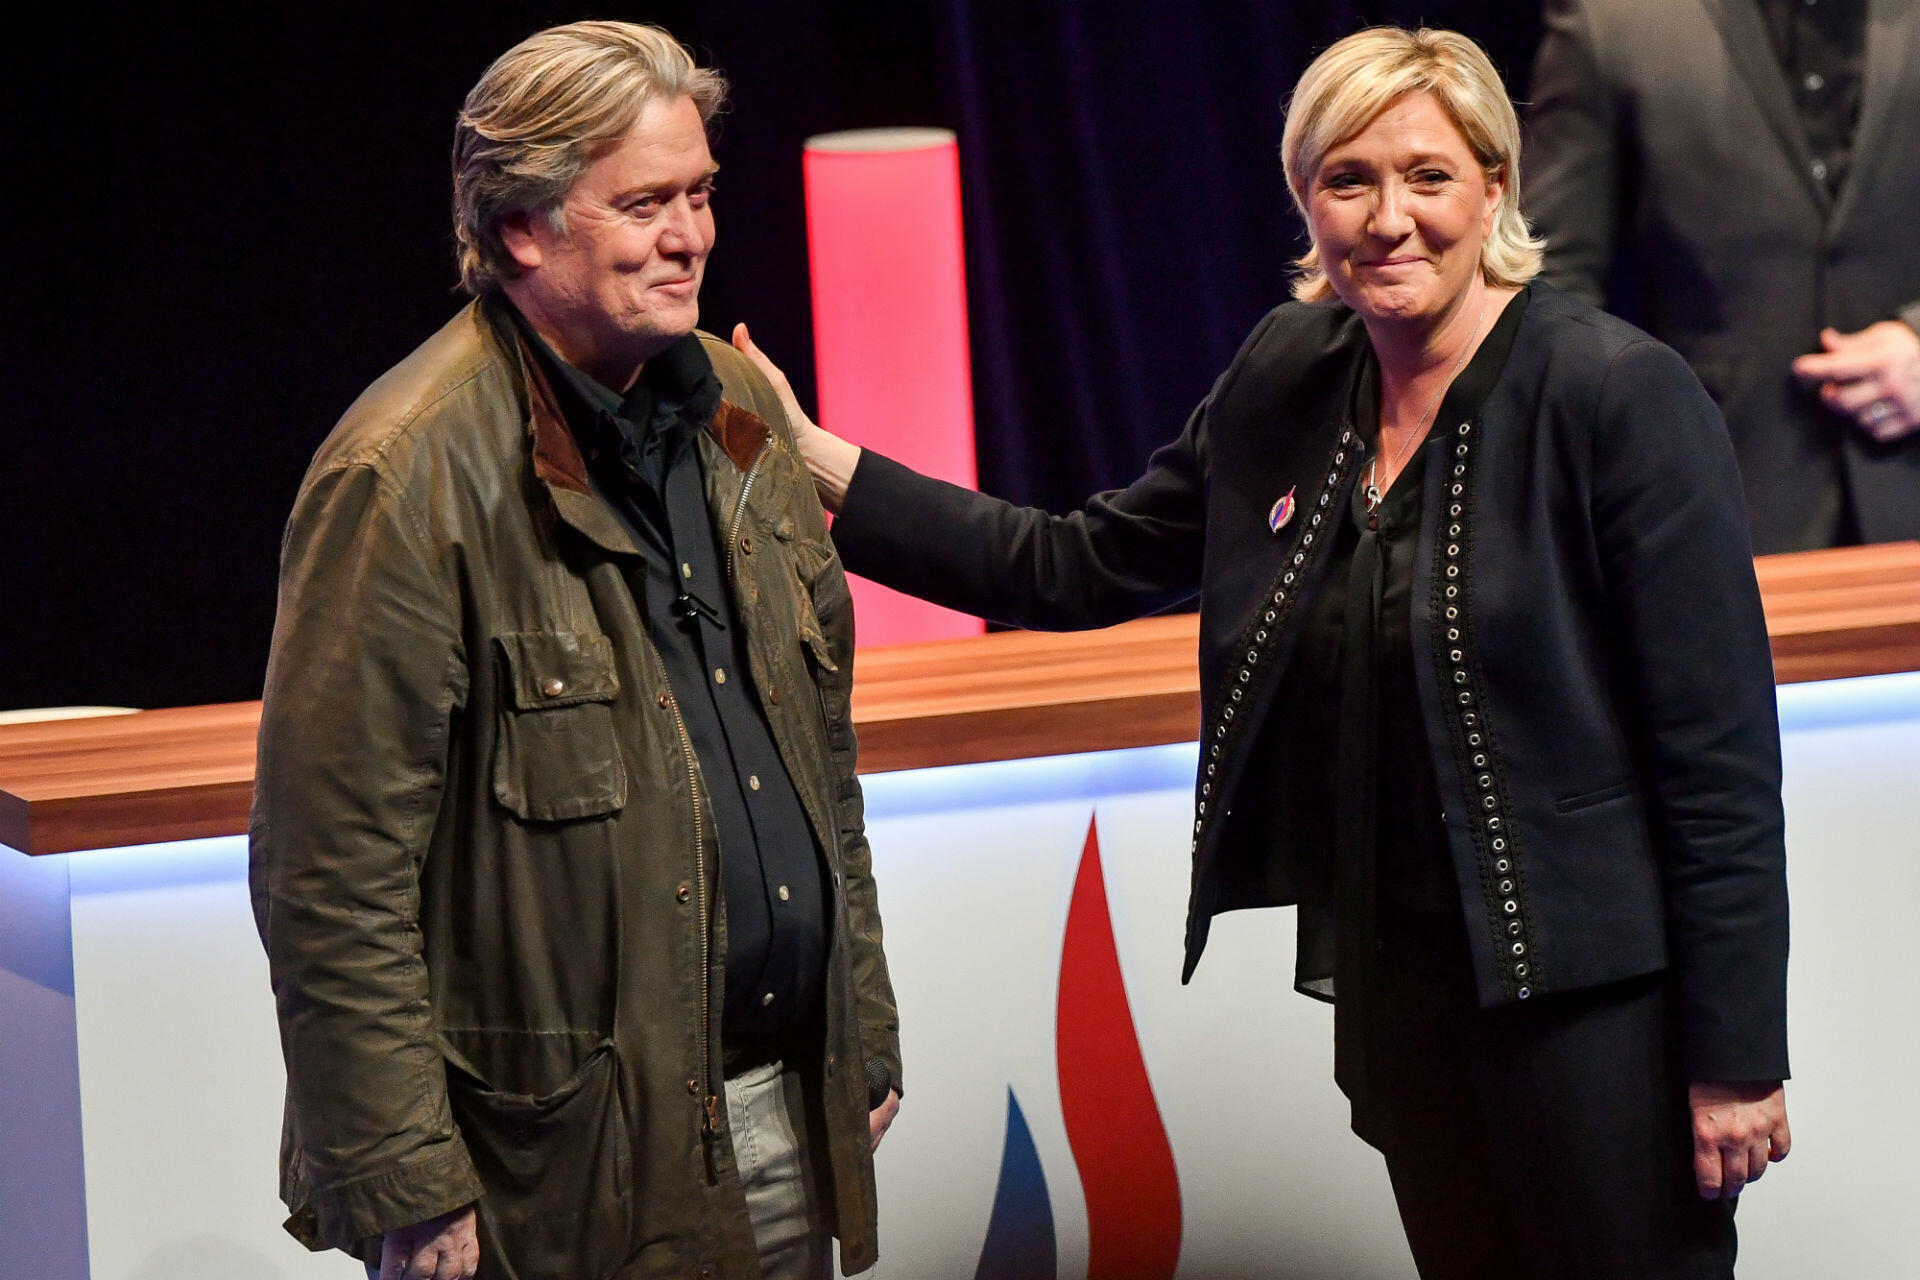 """After a difficult 2017, far-right leader and failed presidential candidate Marine Le Pen tried to stage a comeback. At the National Front party conference in March, she sought to turn the page definitively by distancing herself from the party's founder — her father, Jean-Marie Le Pen — and renaming the party the National Rally. But the effort was undermined by the incendiary remarks of Steve Bannon, former adviser to US President Donald Trump, who told the group, """"Let them call you racist … wear it as a badge of honour."""""""